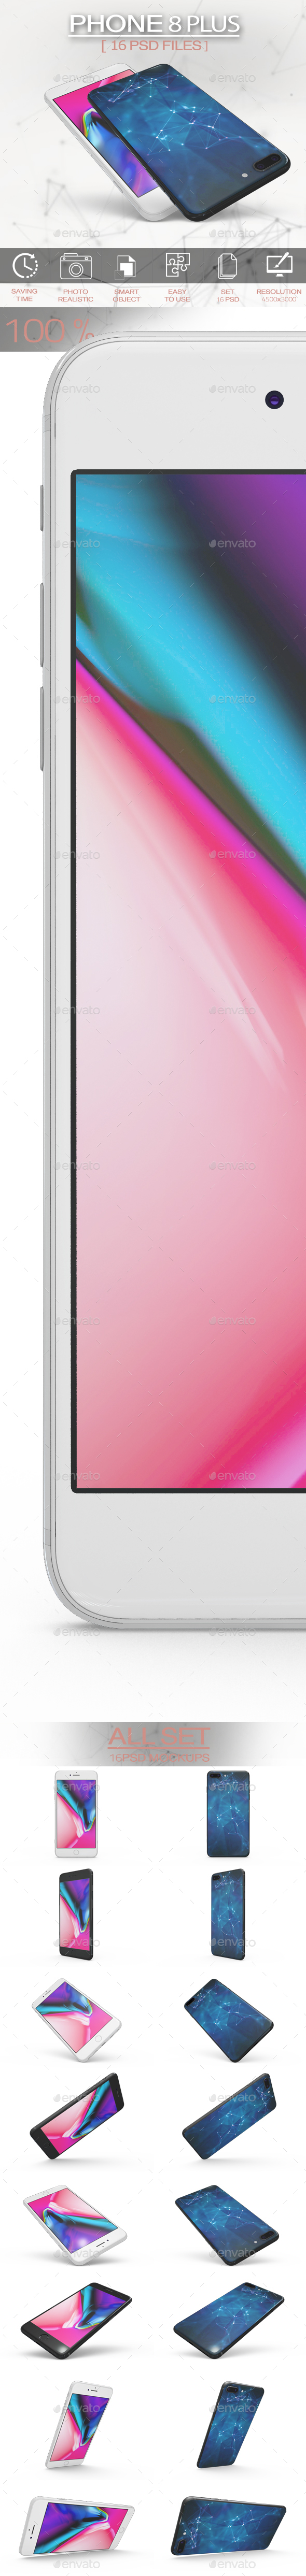 Phone 8 Plus MockUp App & Skin - Product Mock-Ups Graphics